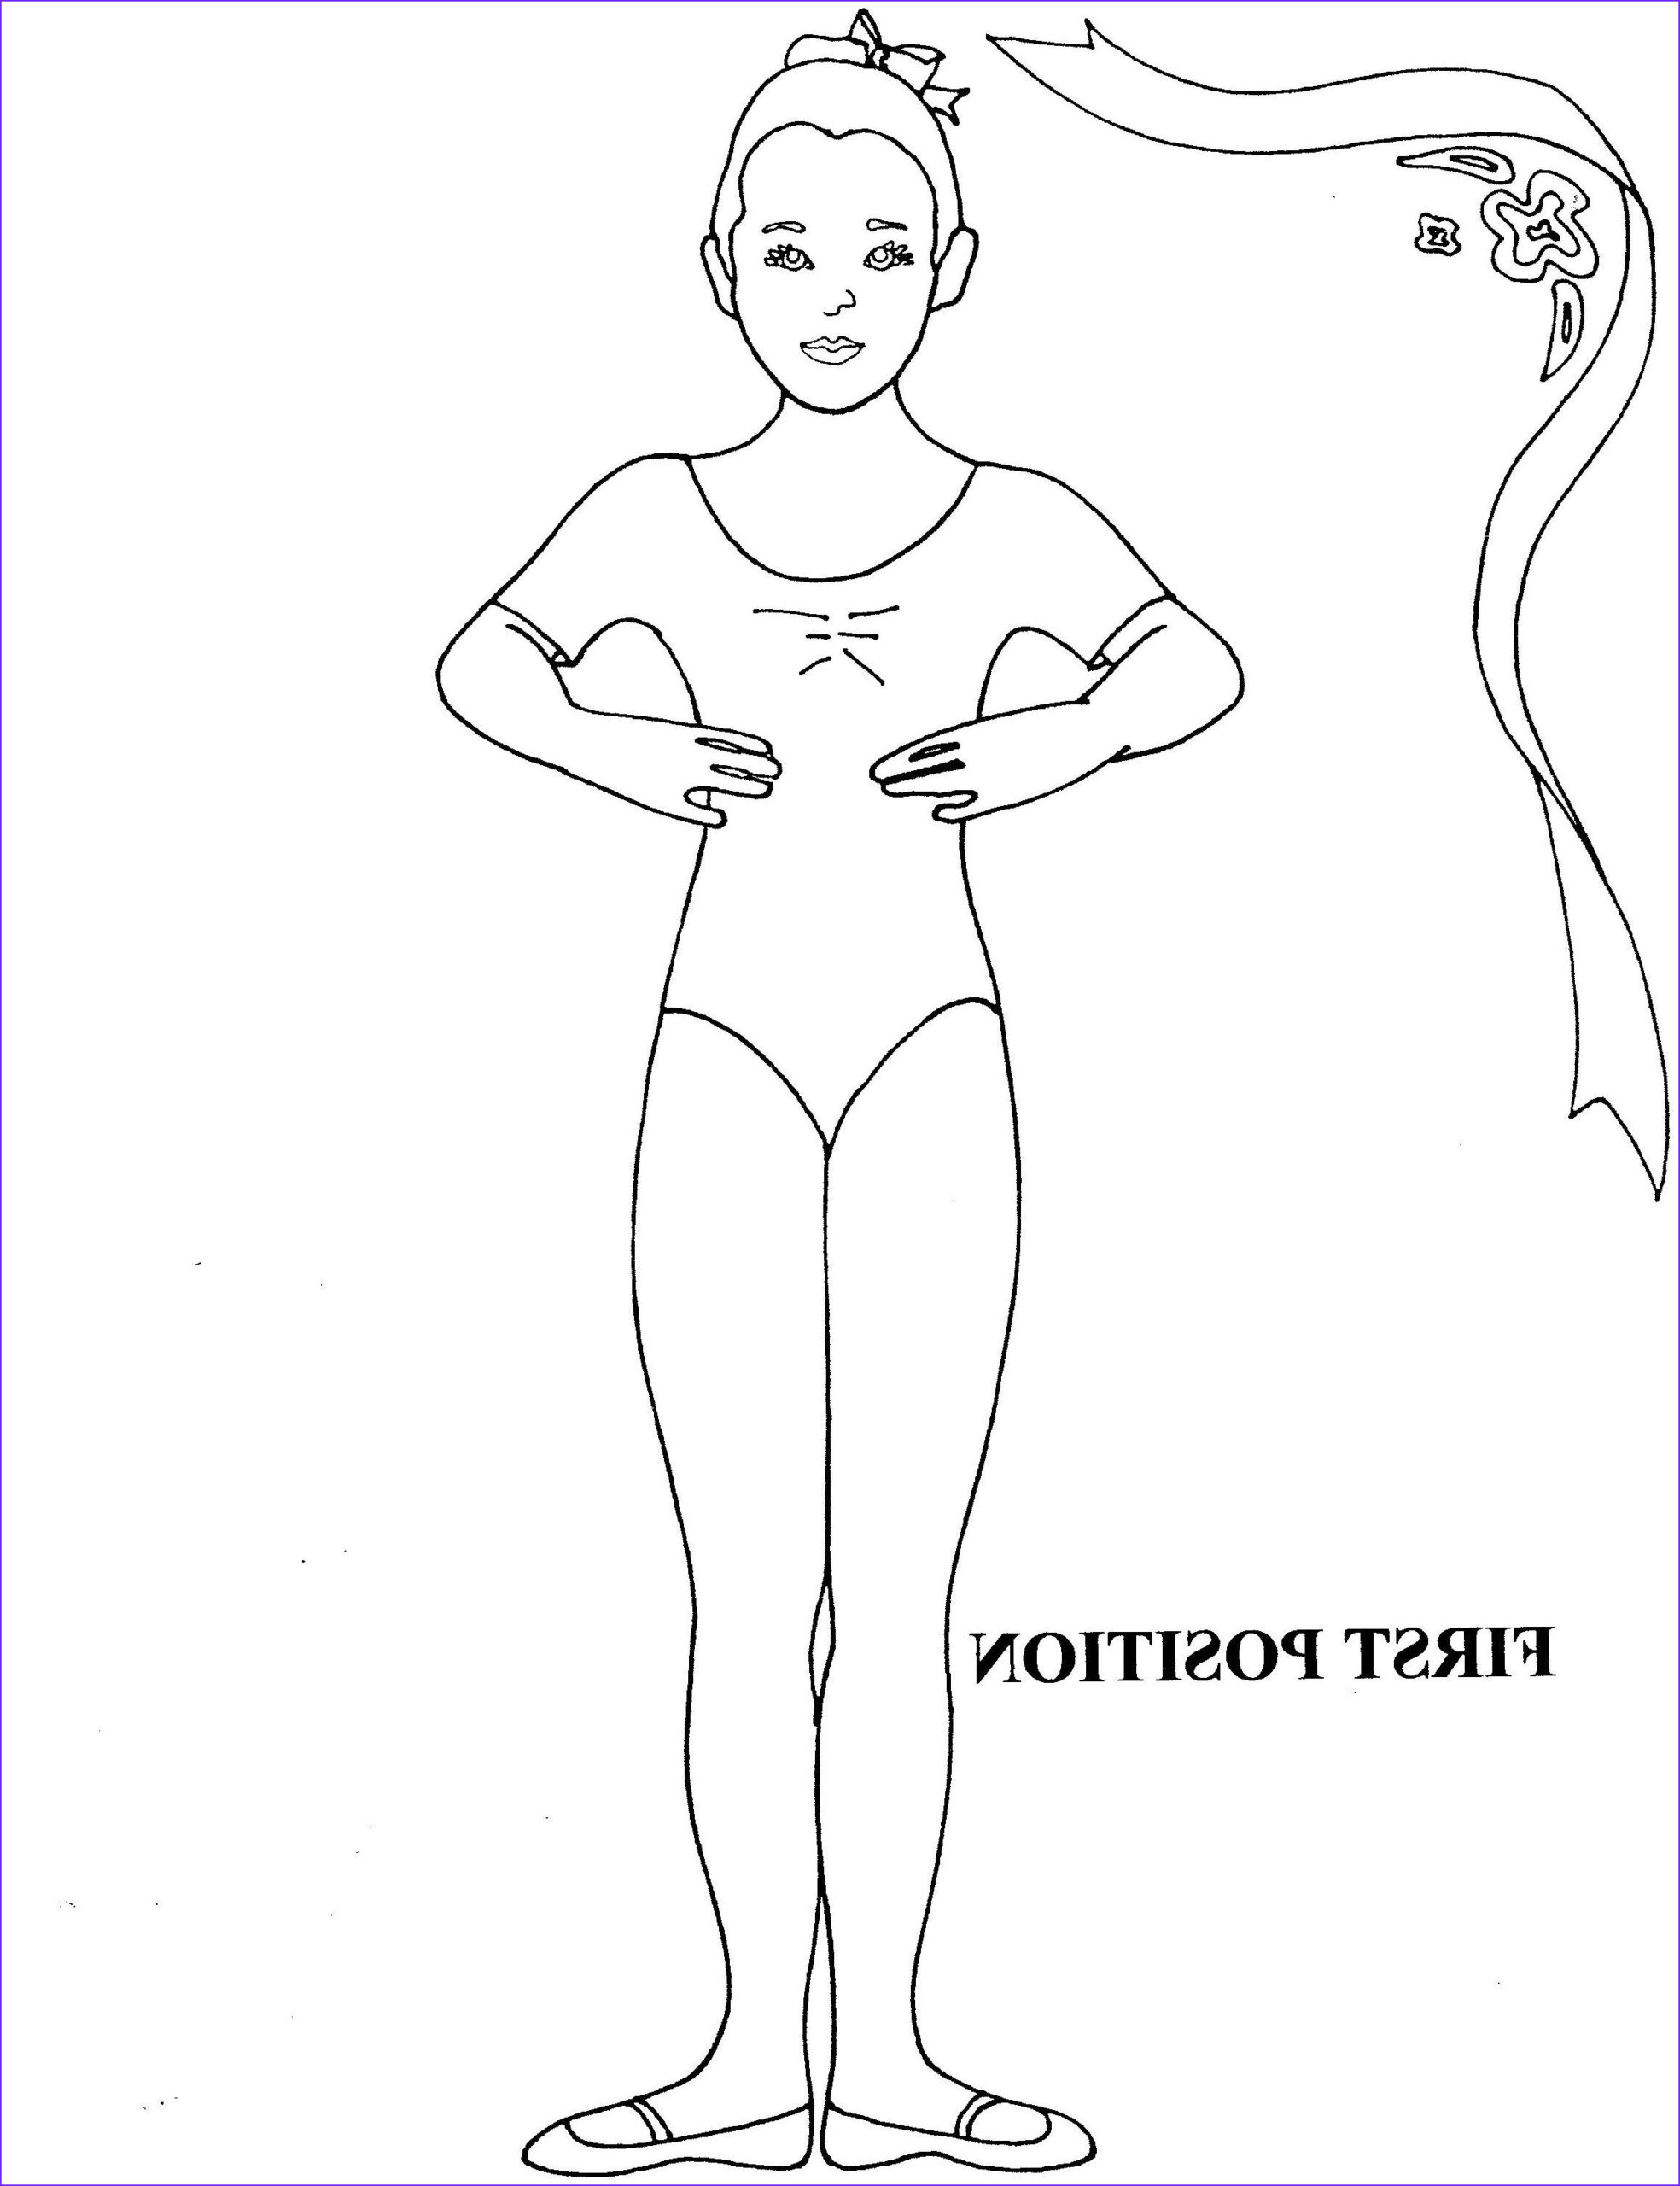 Dance Coloring Pages Elegant Photography Ballet First Position Coloring Sheet